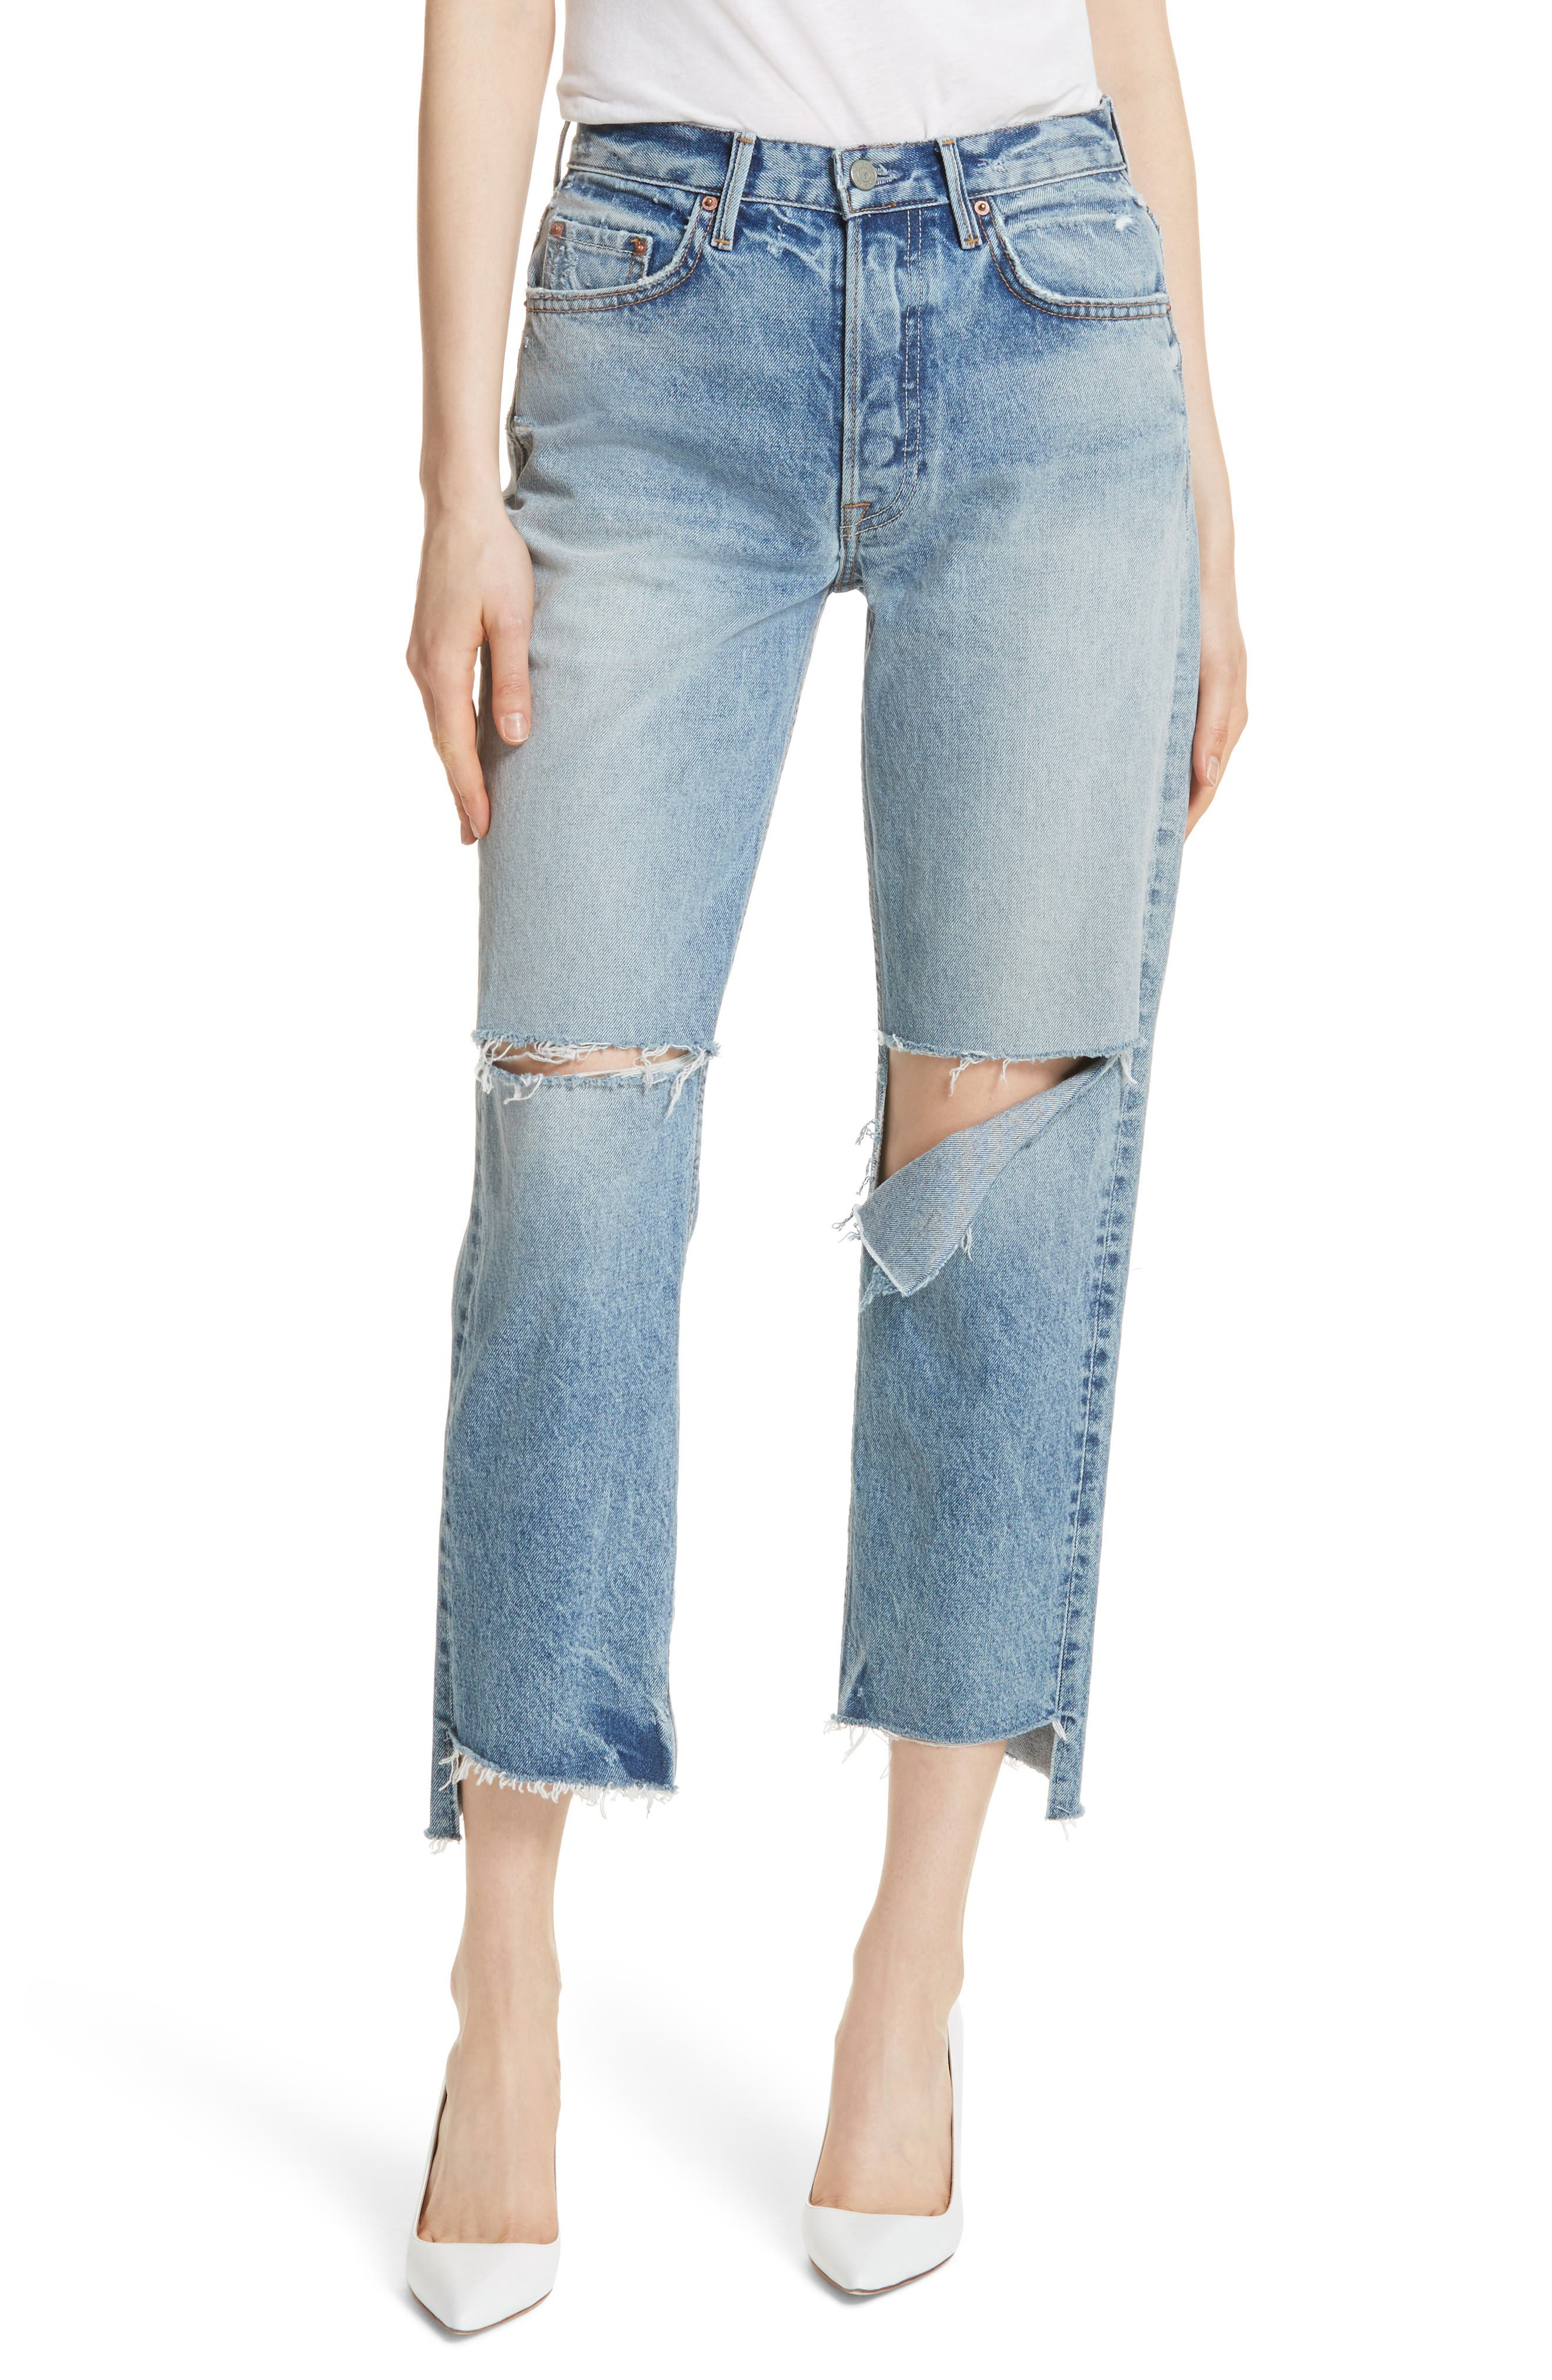 Helena Ripped Rigid High Waist Straight Jeans,                         Main,                         color, All Cut Up